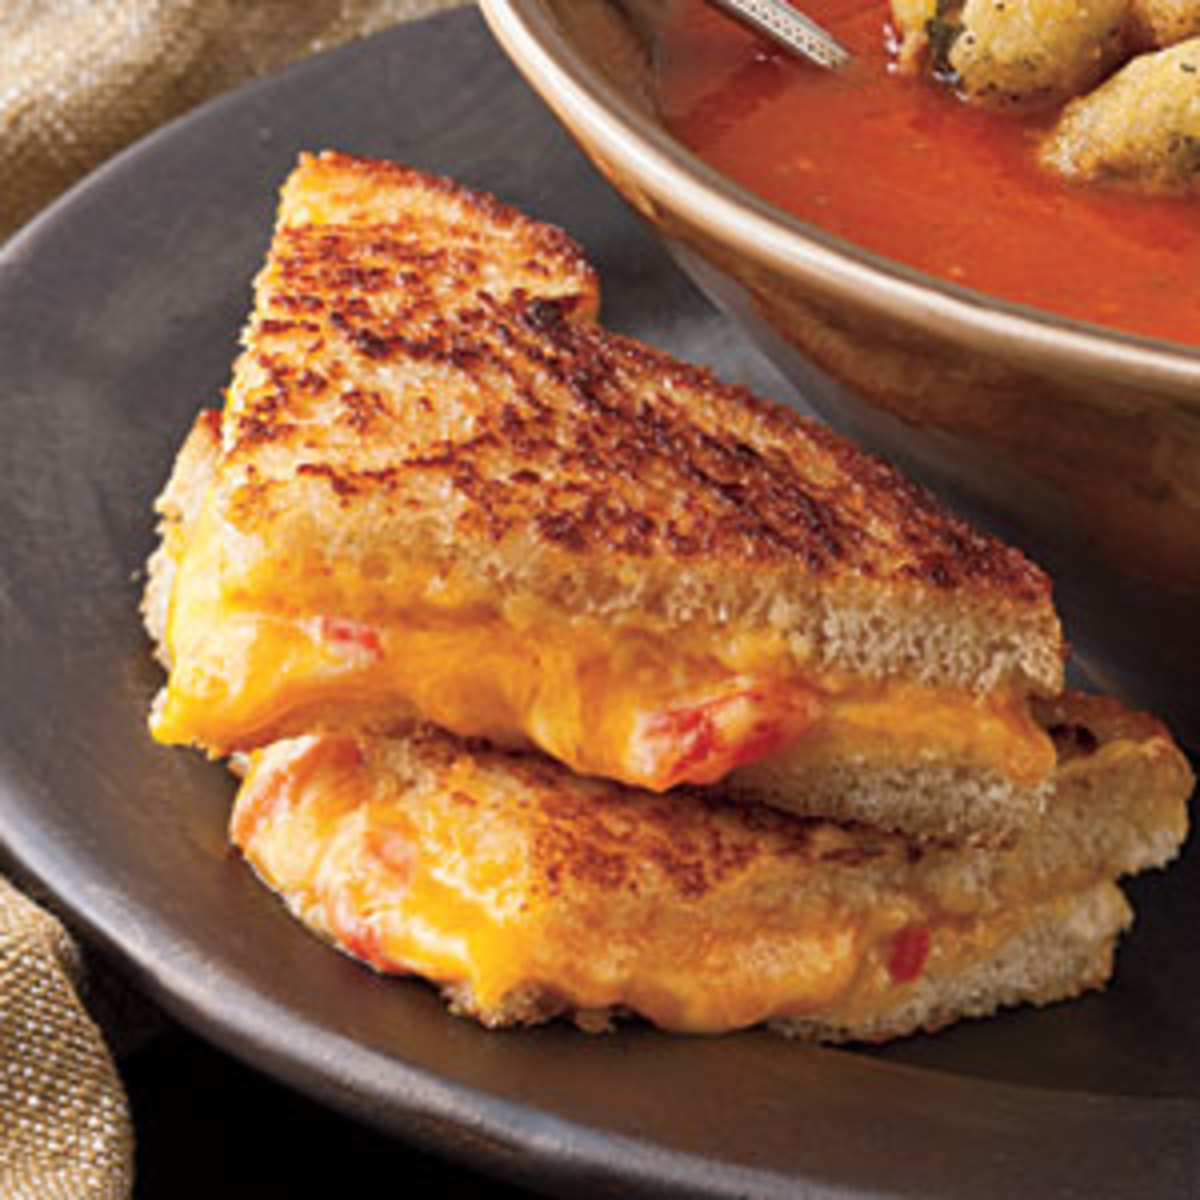 Grilled Pimento Cheese Served With Homemade Tomato Soup Is So Very Delicious.